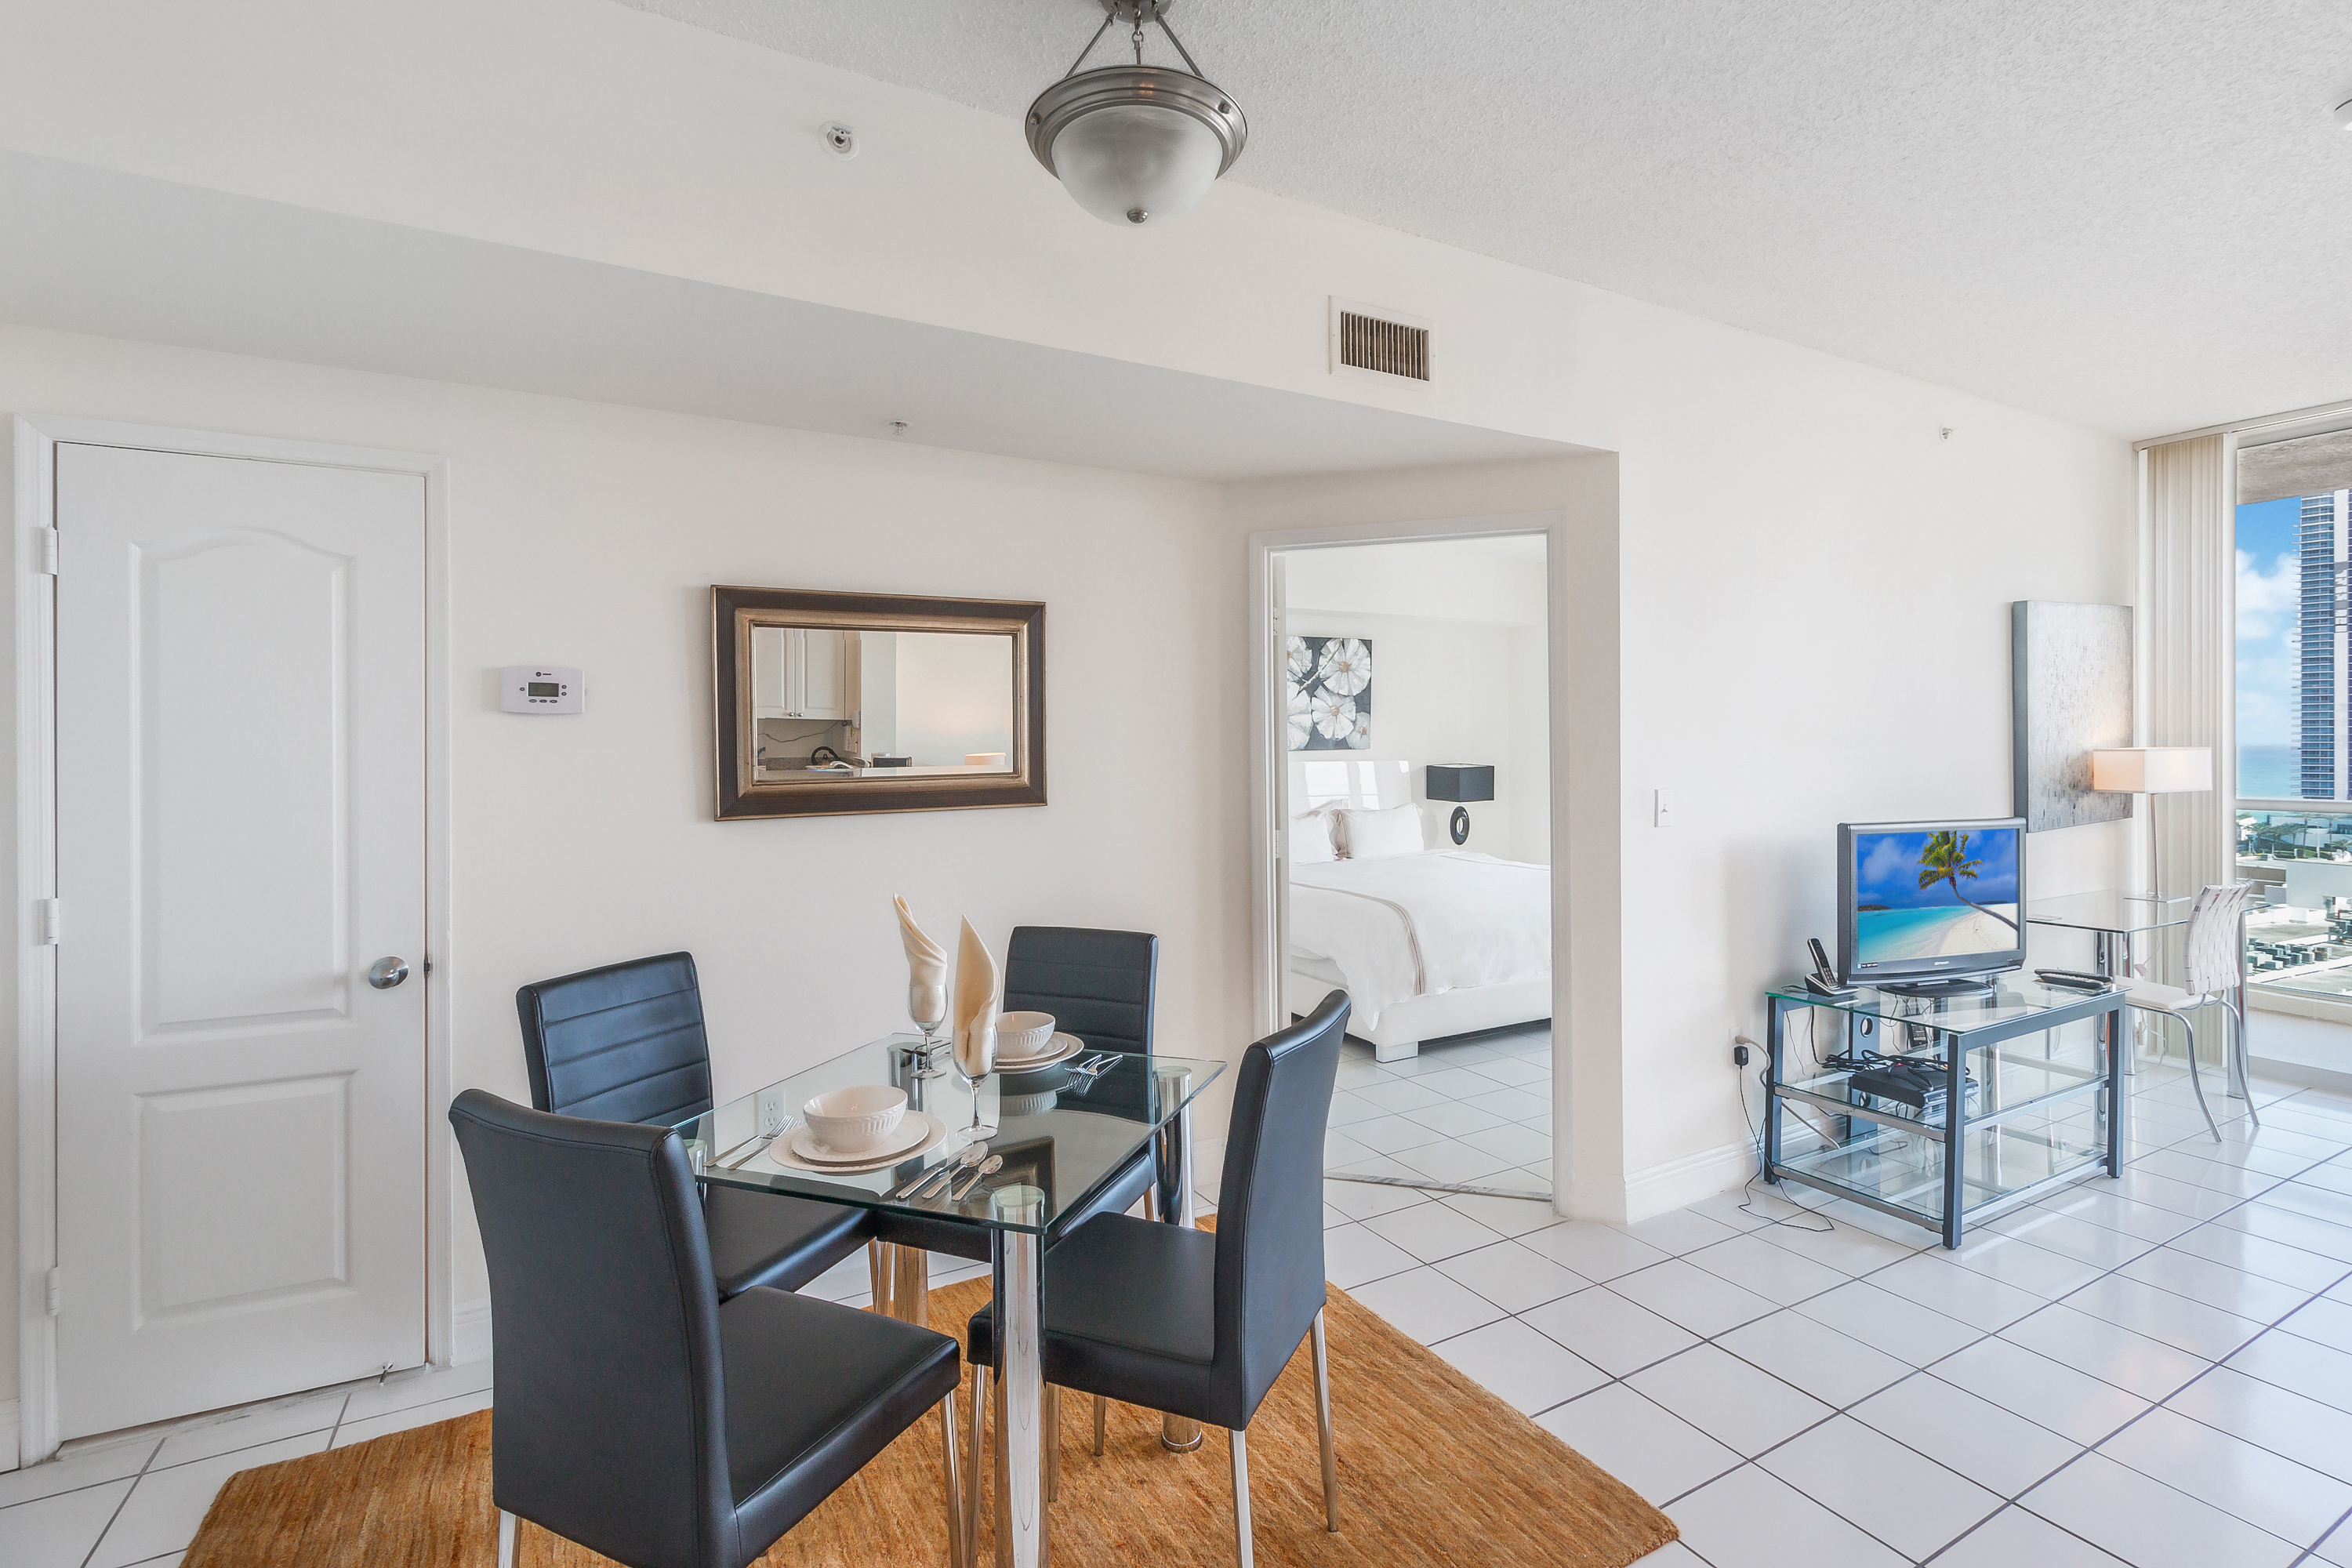 image 9 furnished 1 bedroom Apartment for rent in North Miami Beach, Miami Area